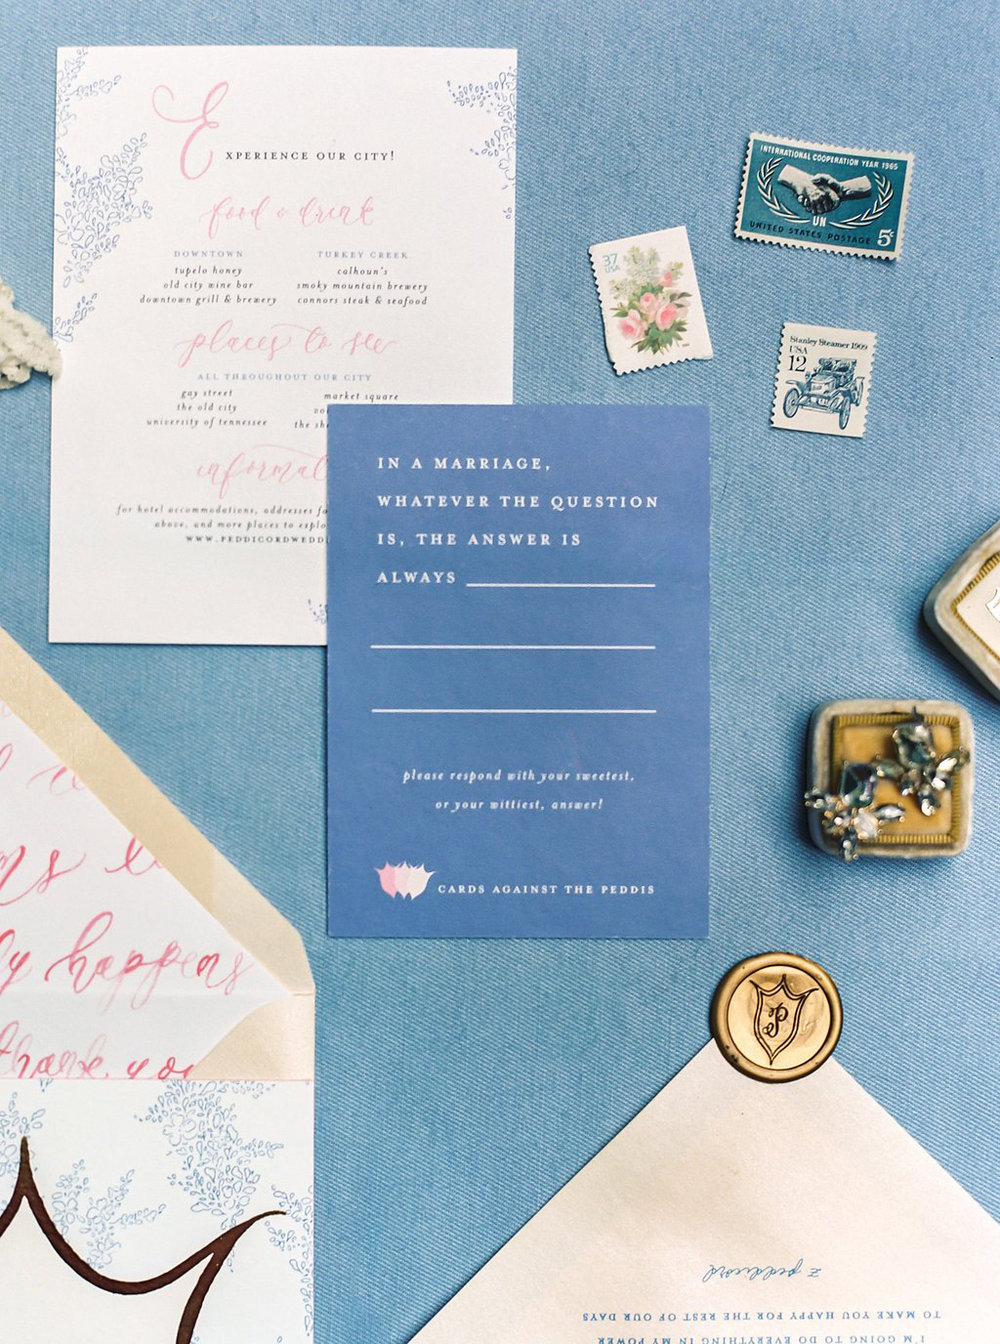 Cards Against Humanity Inspired Wedding Response Cards in a Custom Watercolor Floral and Gold Foil Wedding Invitations with Watercolor Wedding Map, Custom Watercolor Wedding Crest, Gold Wax Seal and Calligraphy Envelope Liners Blush and Navy Wedding with Fuchsia, French Blue and Gold Accents | Simply Jessica Marie's Southern Wedding at Gettysvue Golf Course and Country Club in Knoxville Tennessee | Photo by Perry Vaile Photography